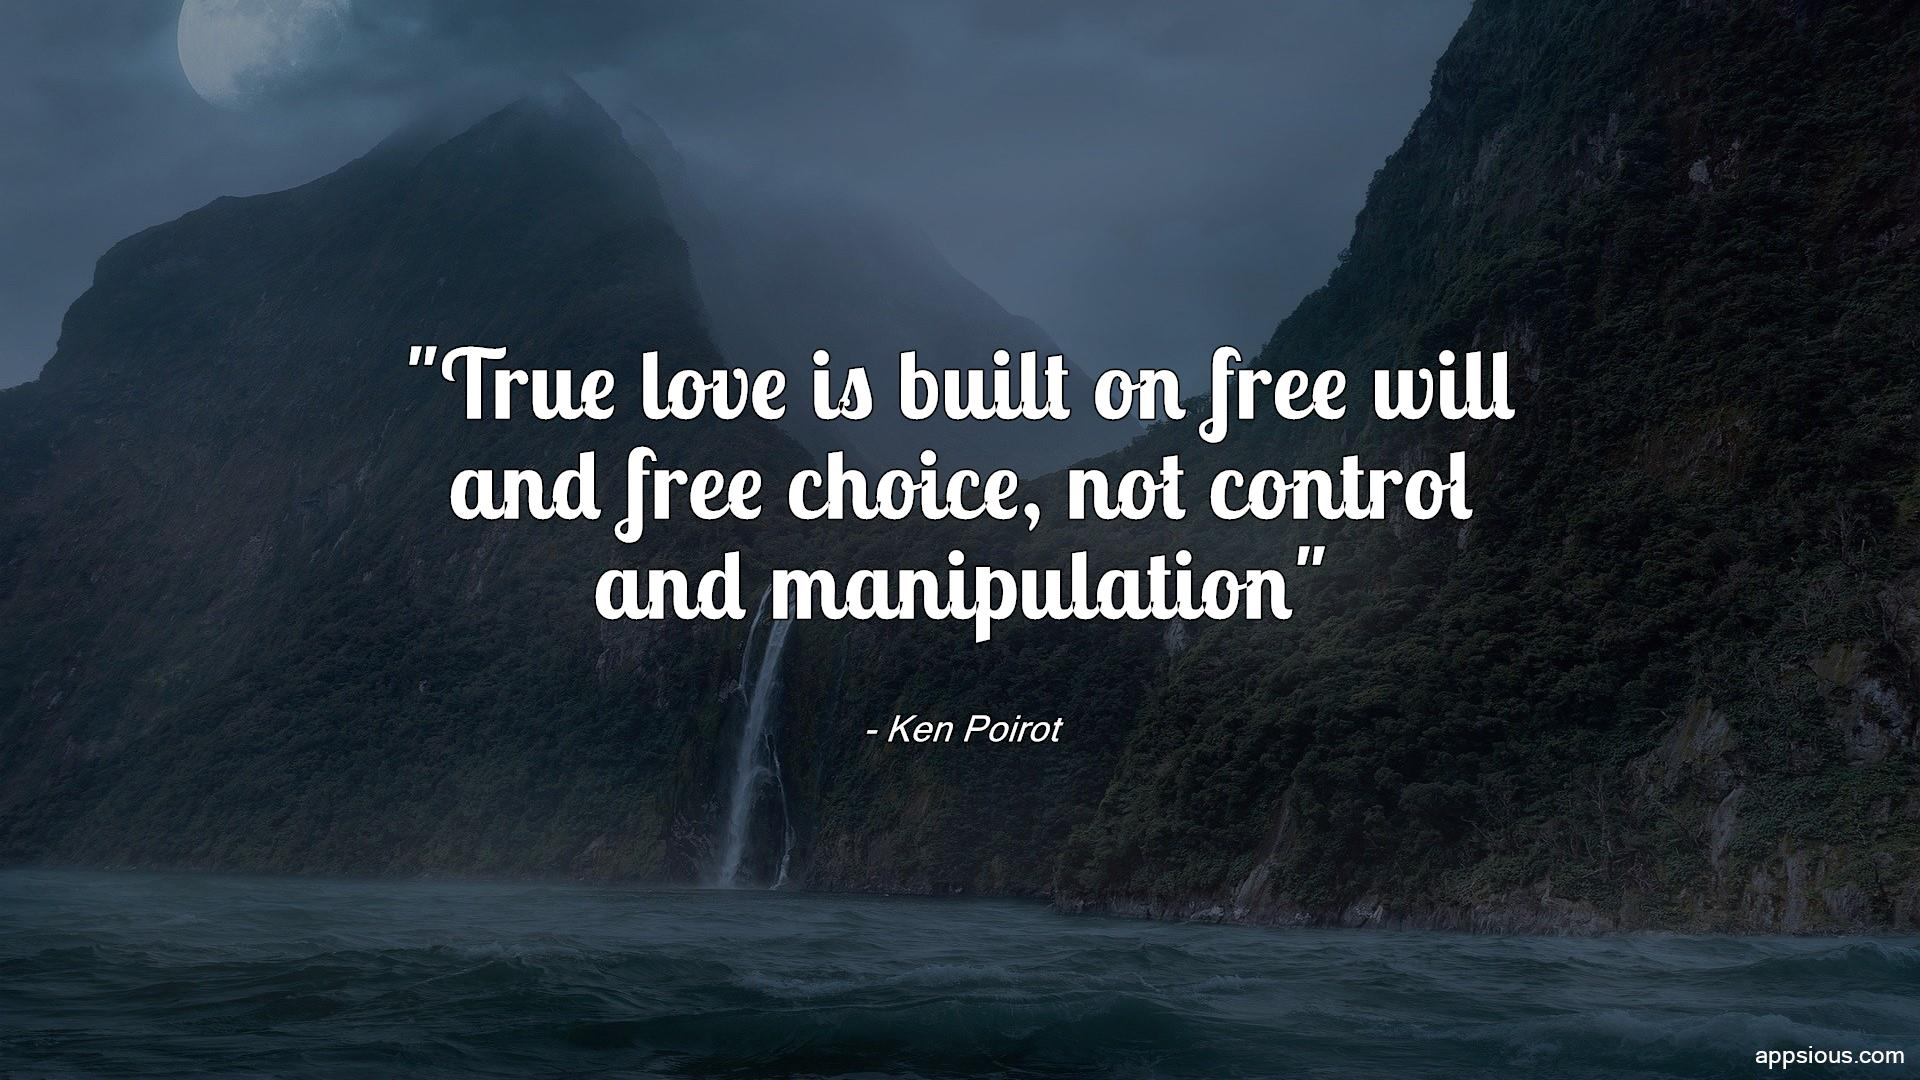 True love is built on free will and free choice, not control and manipulation